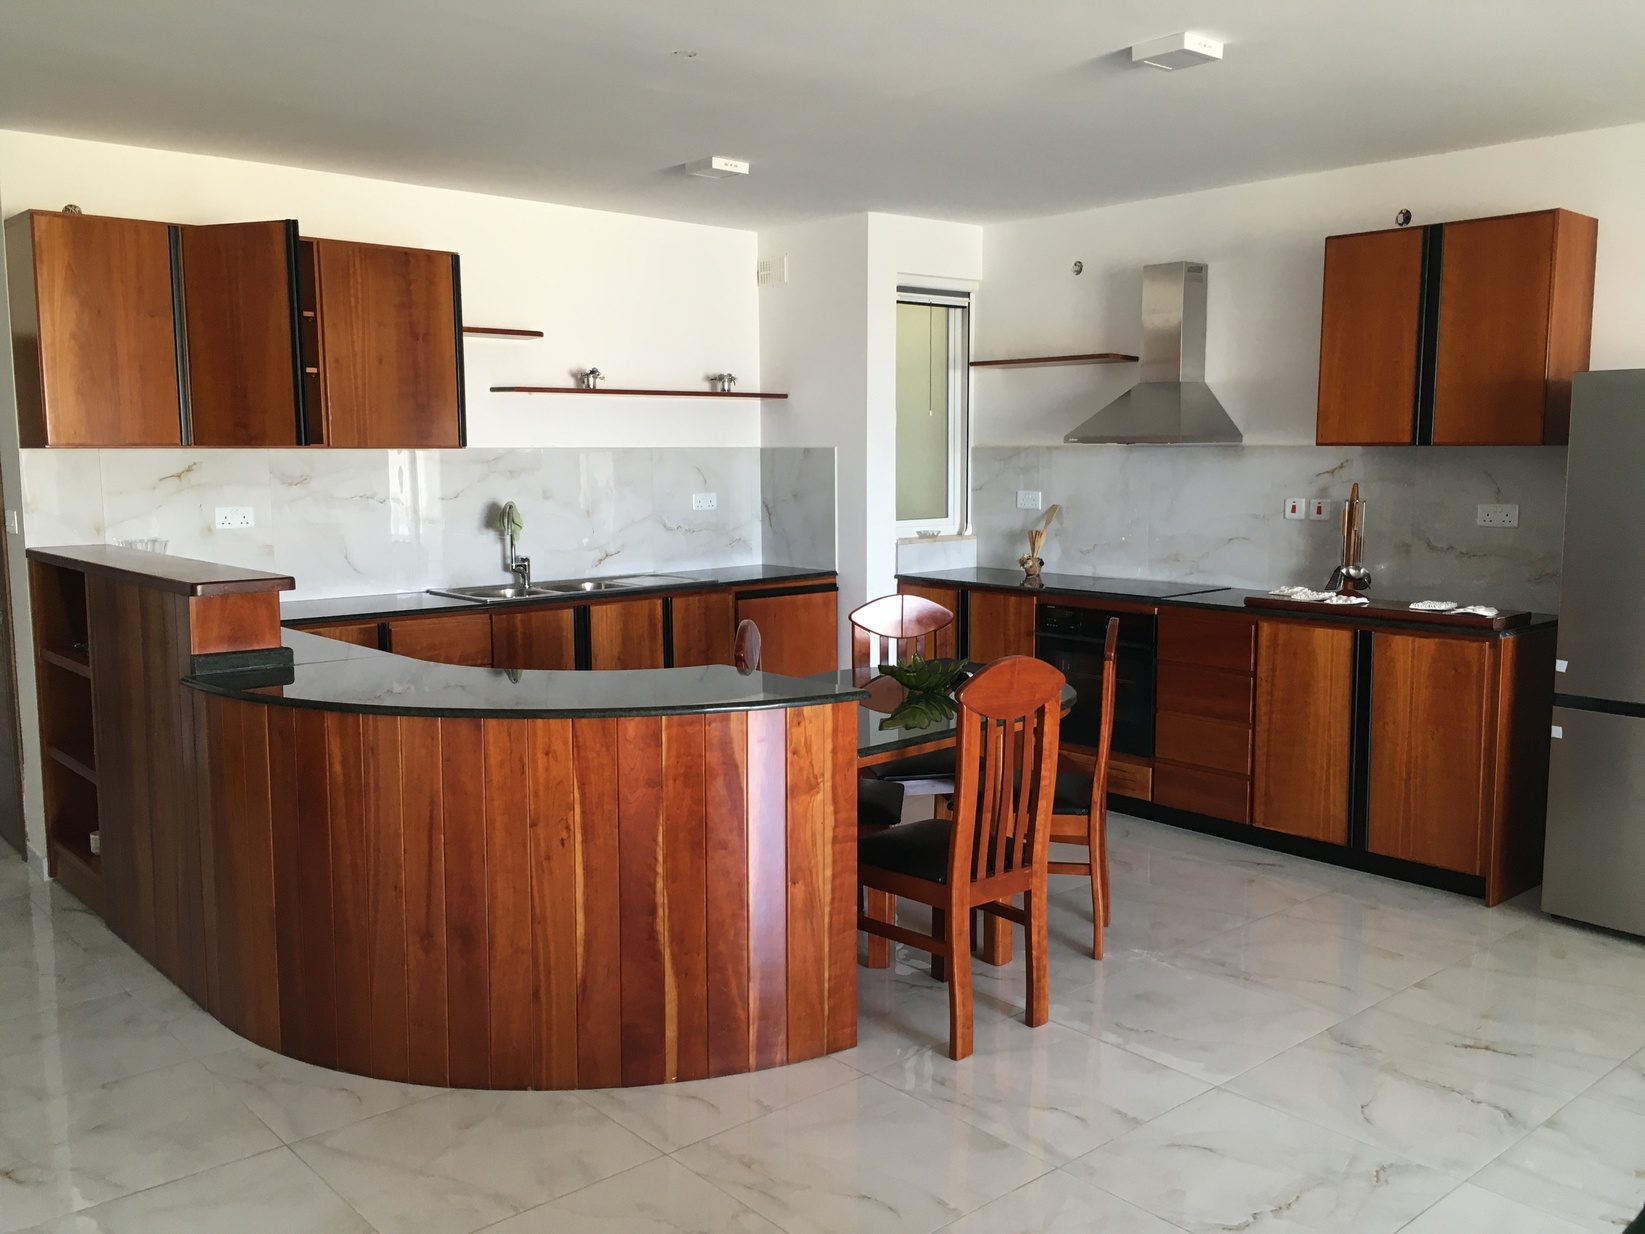 3 bed Apartment For Rent in Swieqi, Swieqi - thumb 9